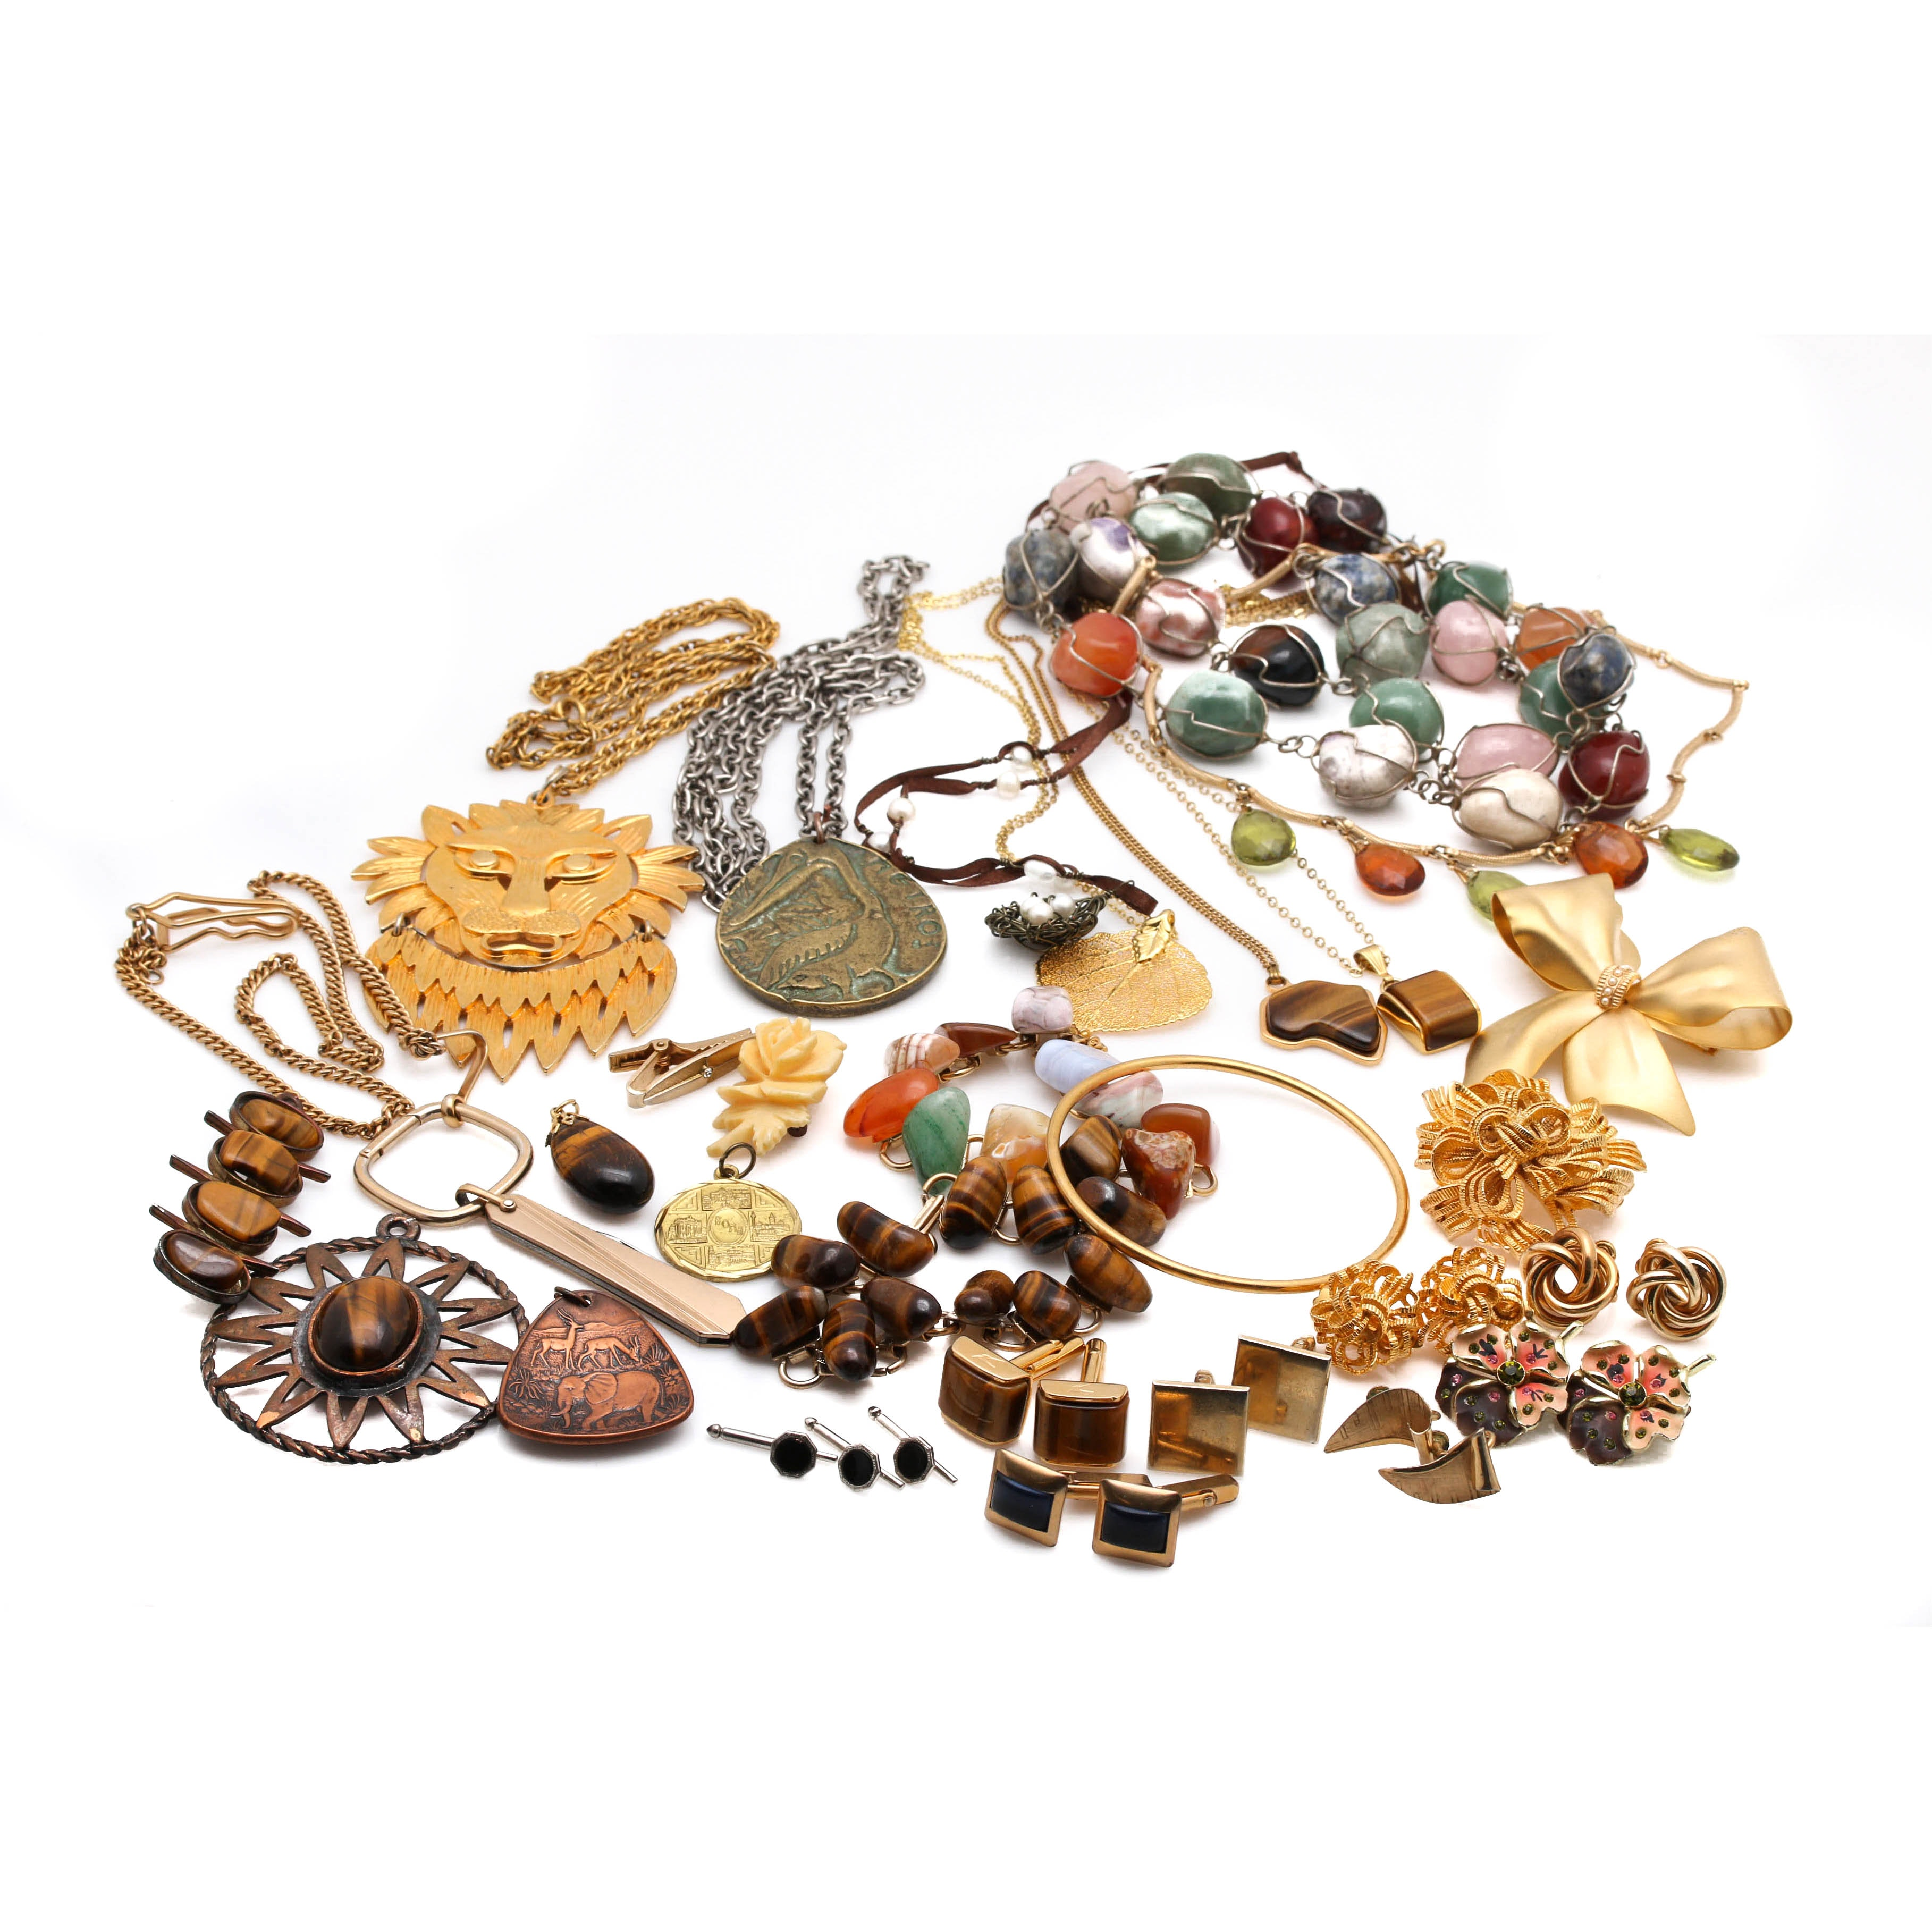 Assortment of Jewelry Featuring Tiger's Eye